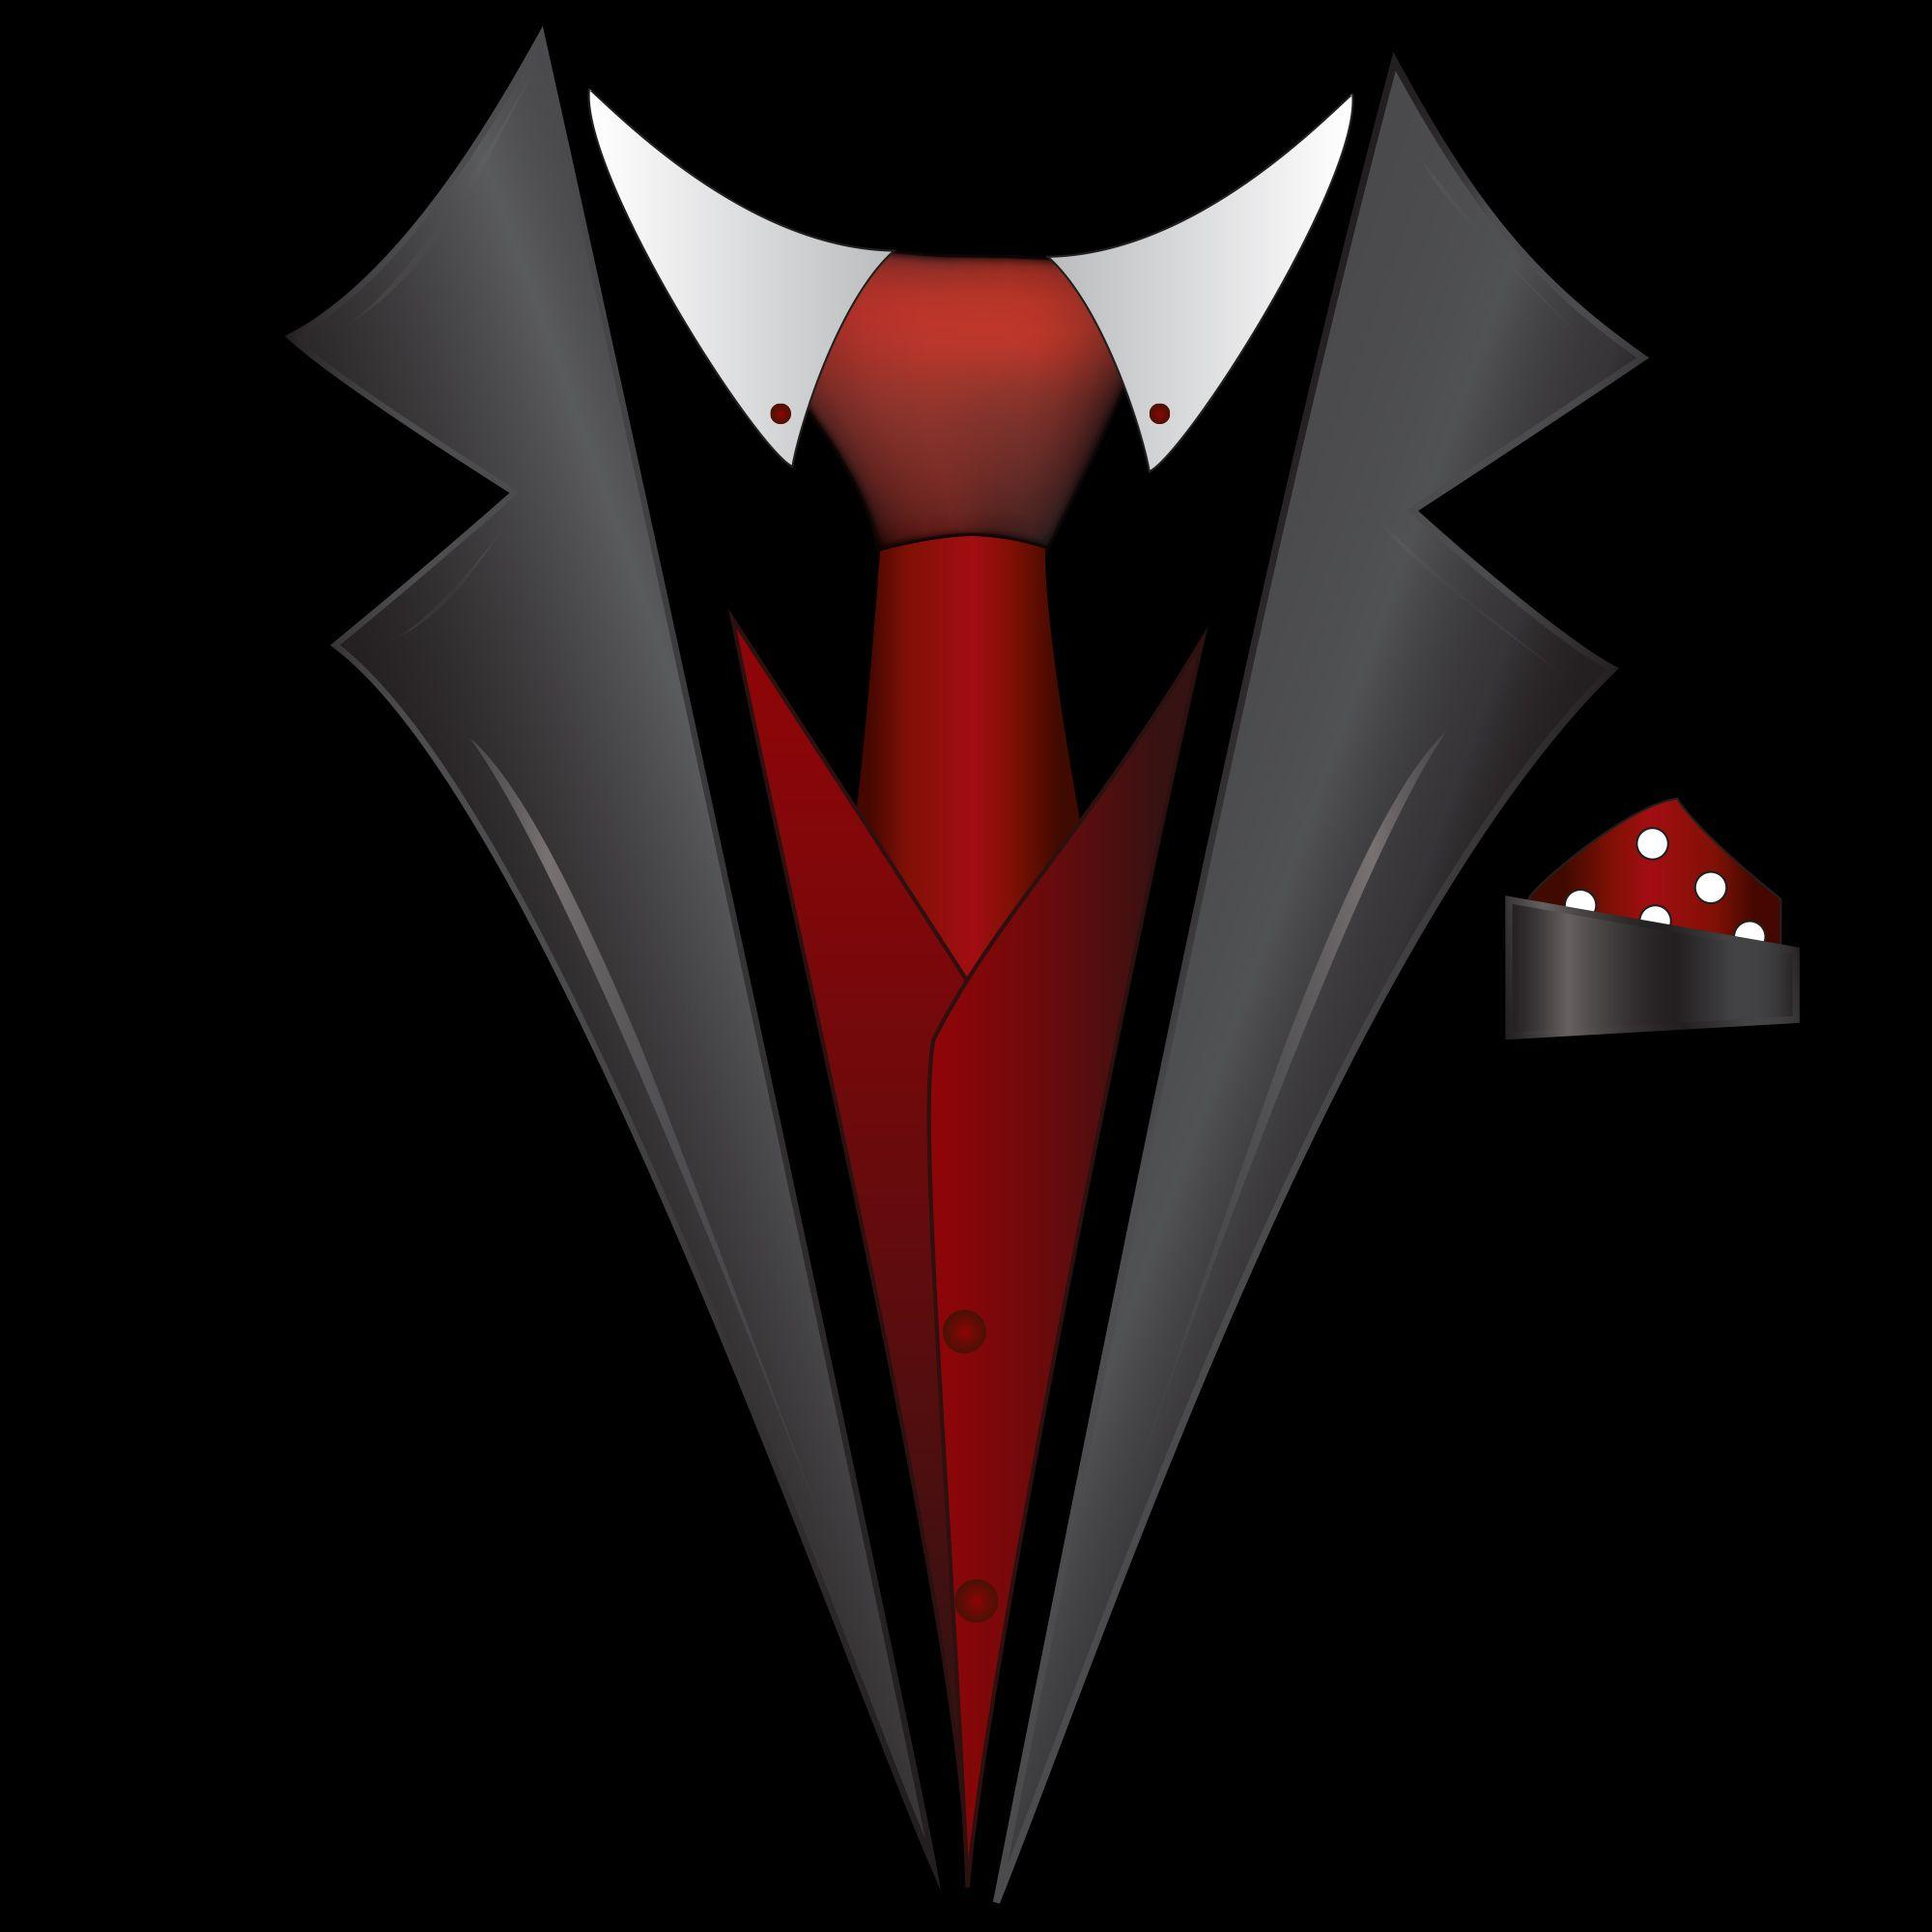 Tuxedo Wallpapers images in Collection Page